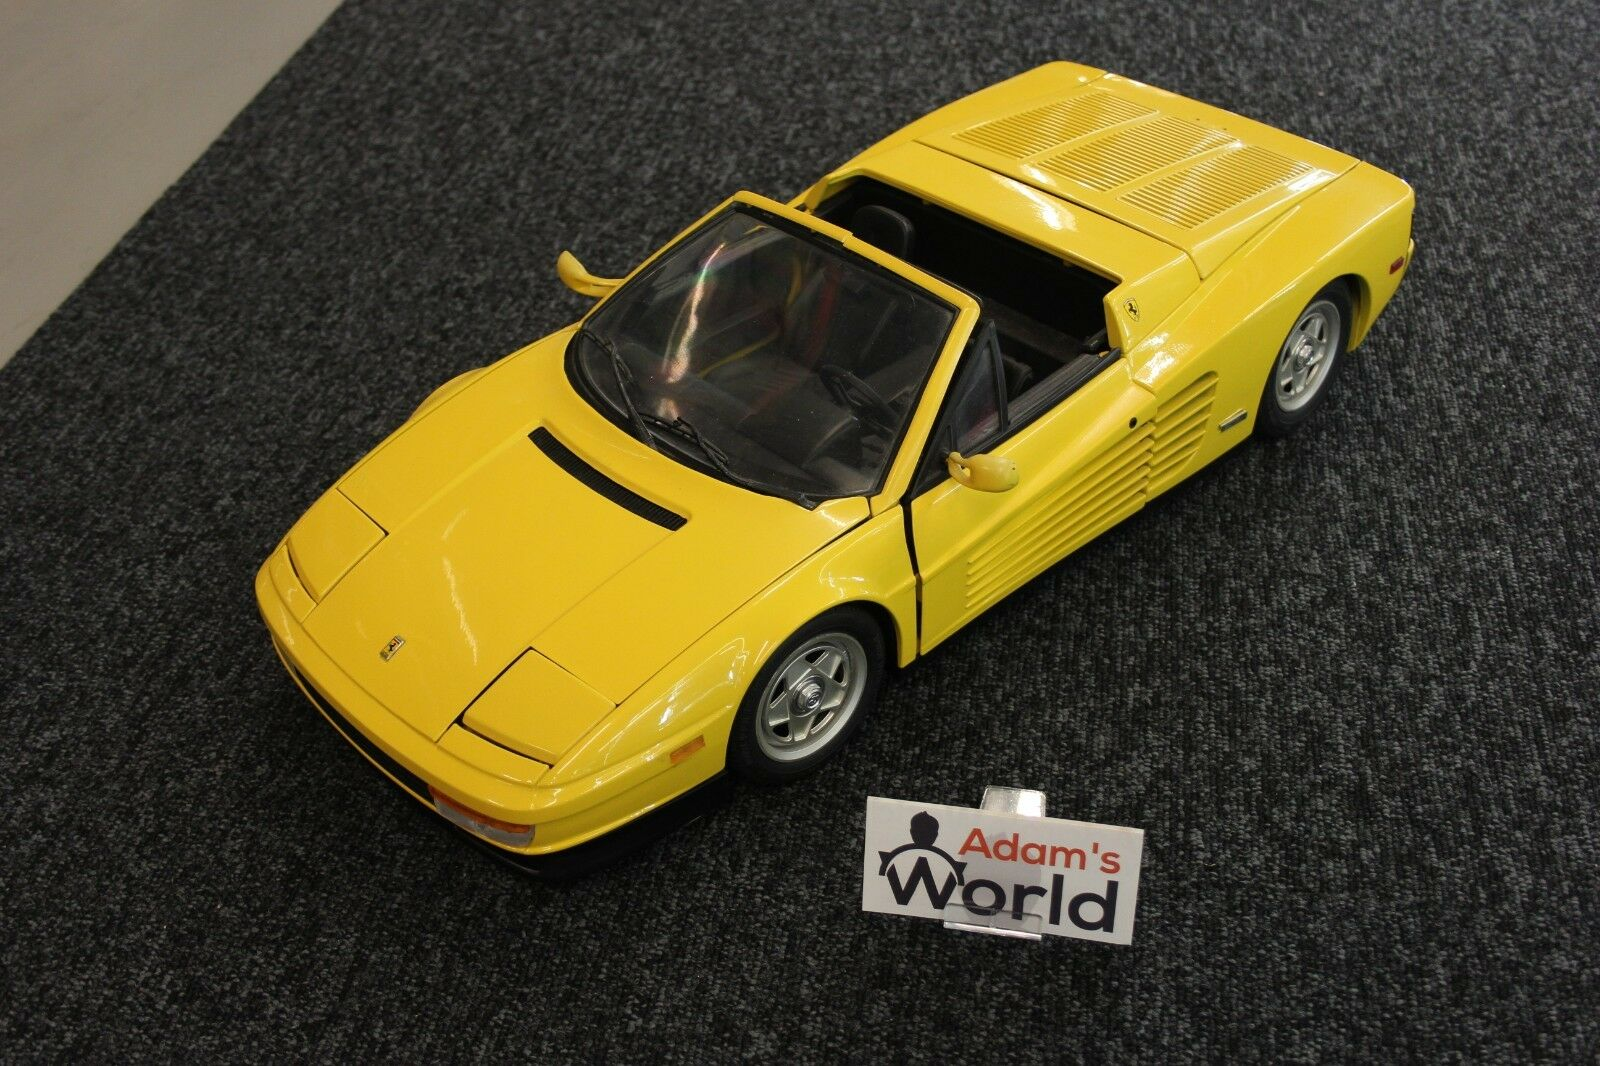 Pocher (build kit) Ferrari Testarossa Spyder 1 8 jaune